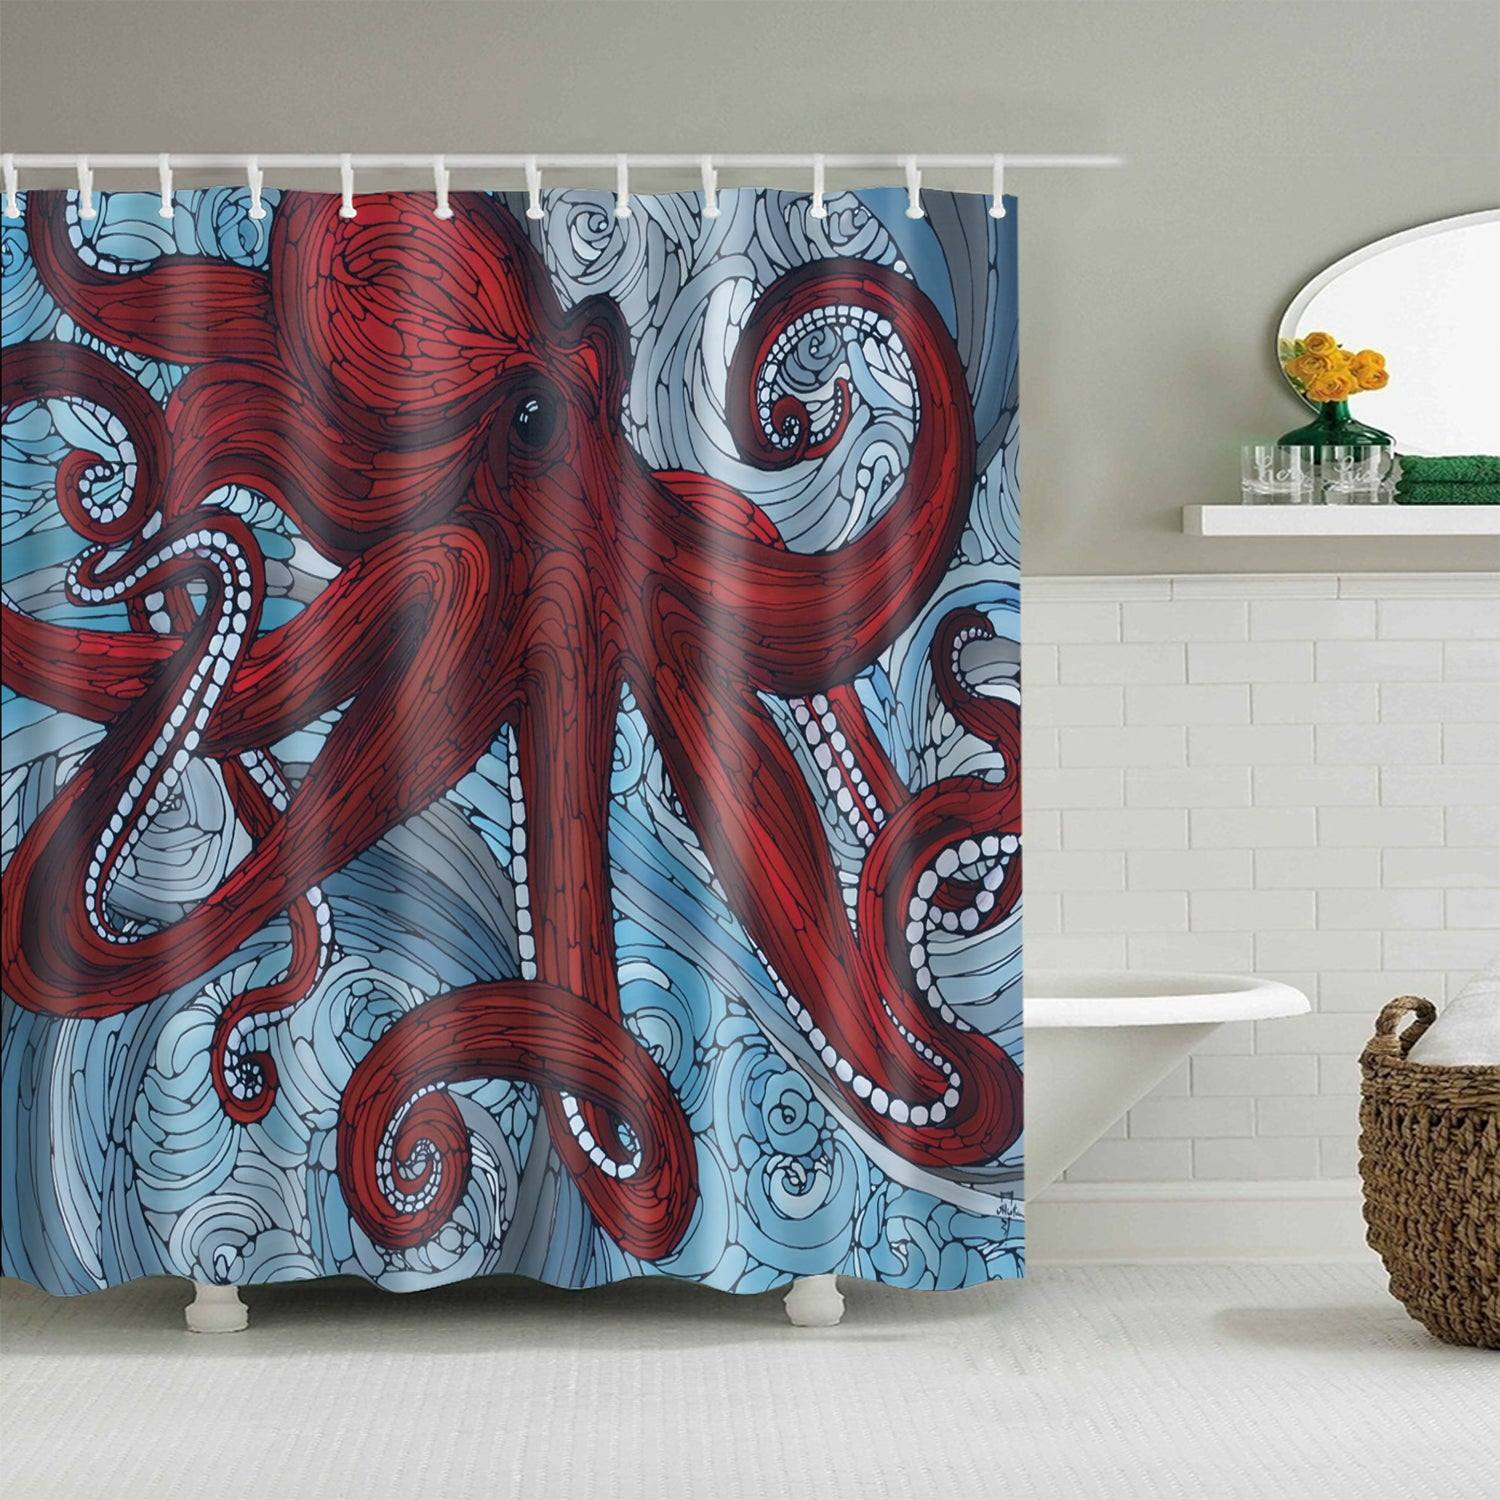 Line Drawing Art Colossal Red Octopus Shower Curtain